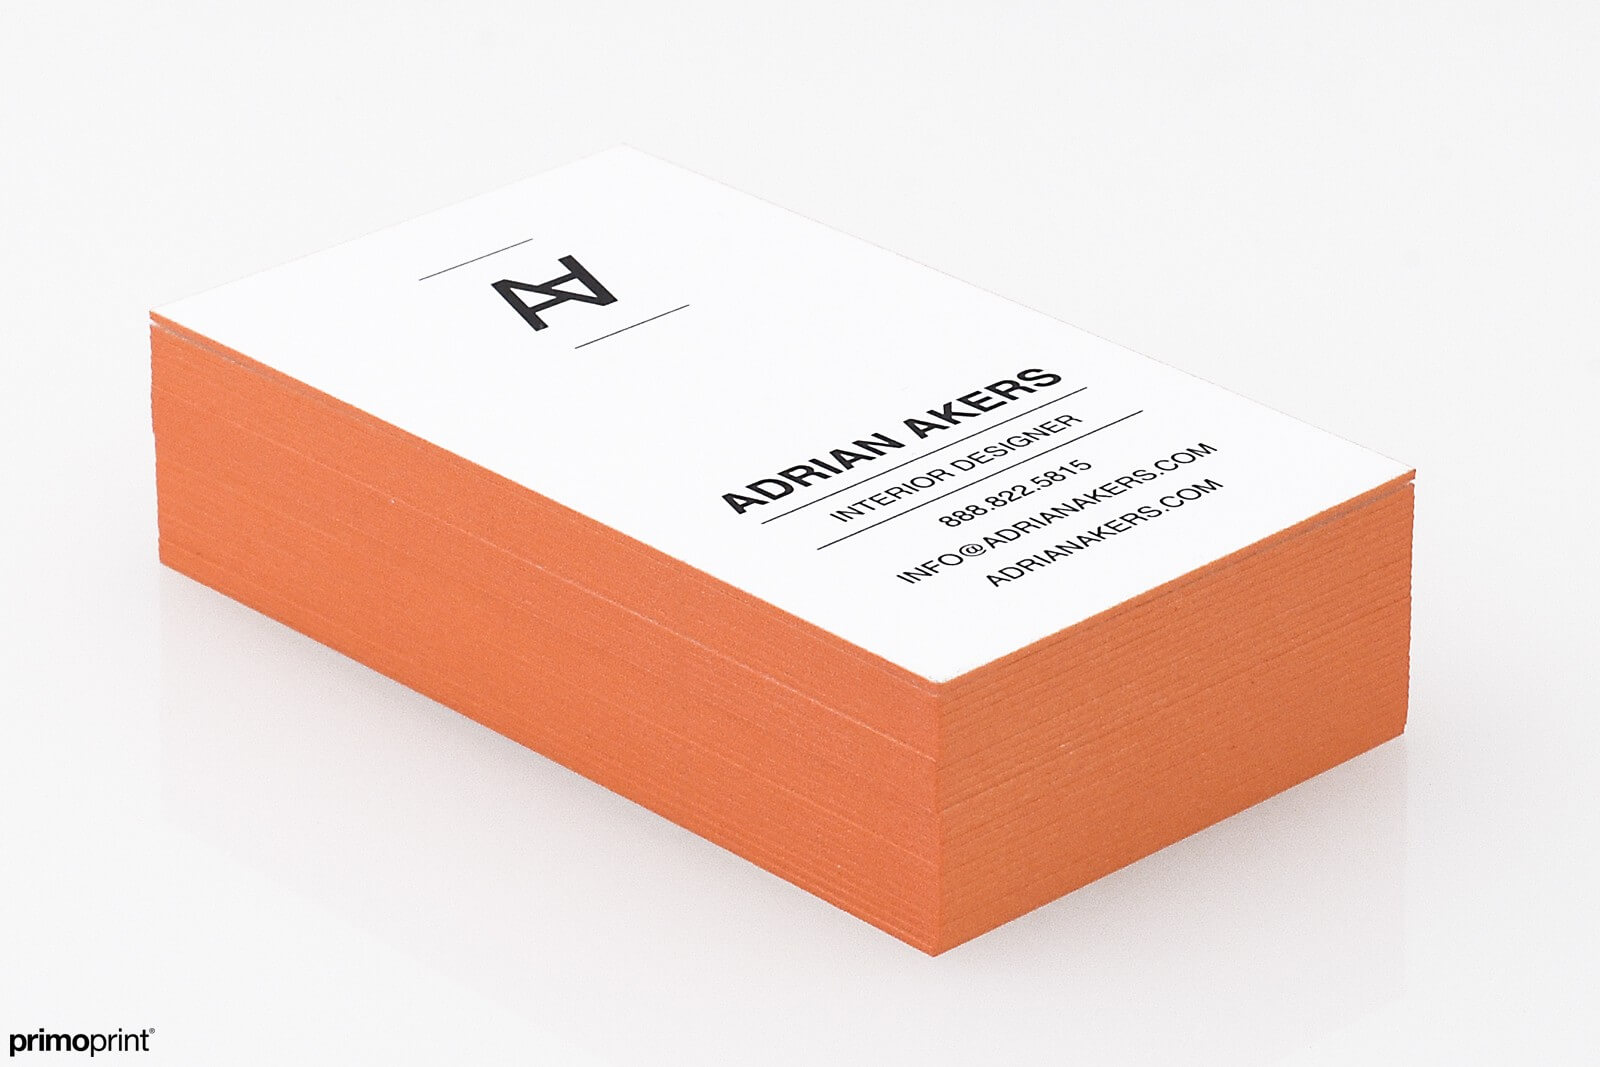 Orange painted edge business card designed by Primoprint.